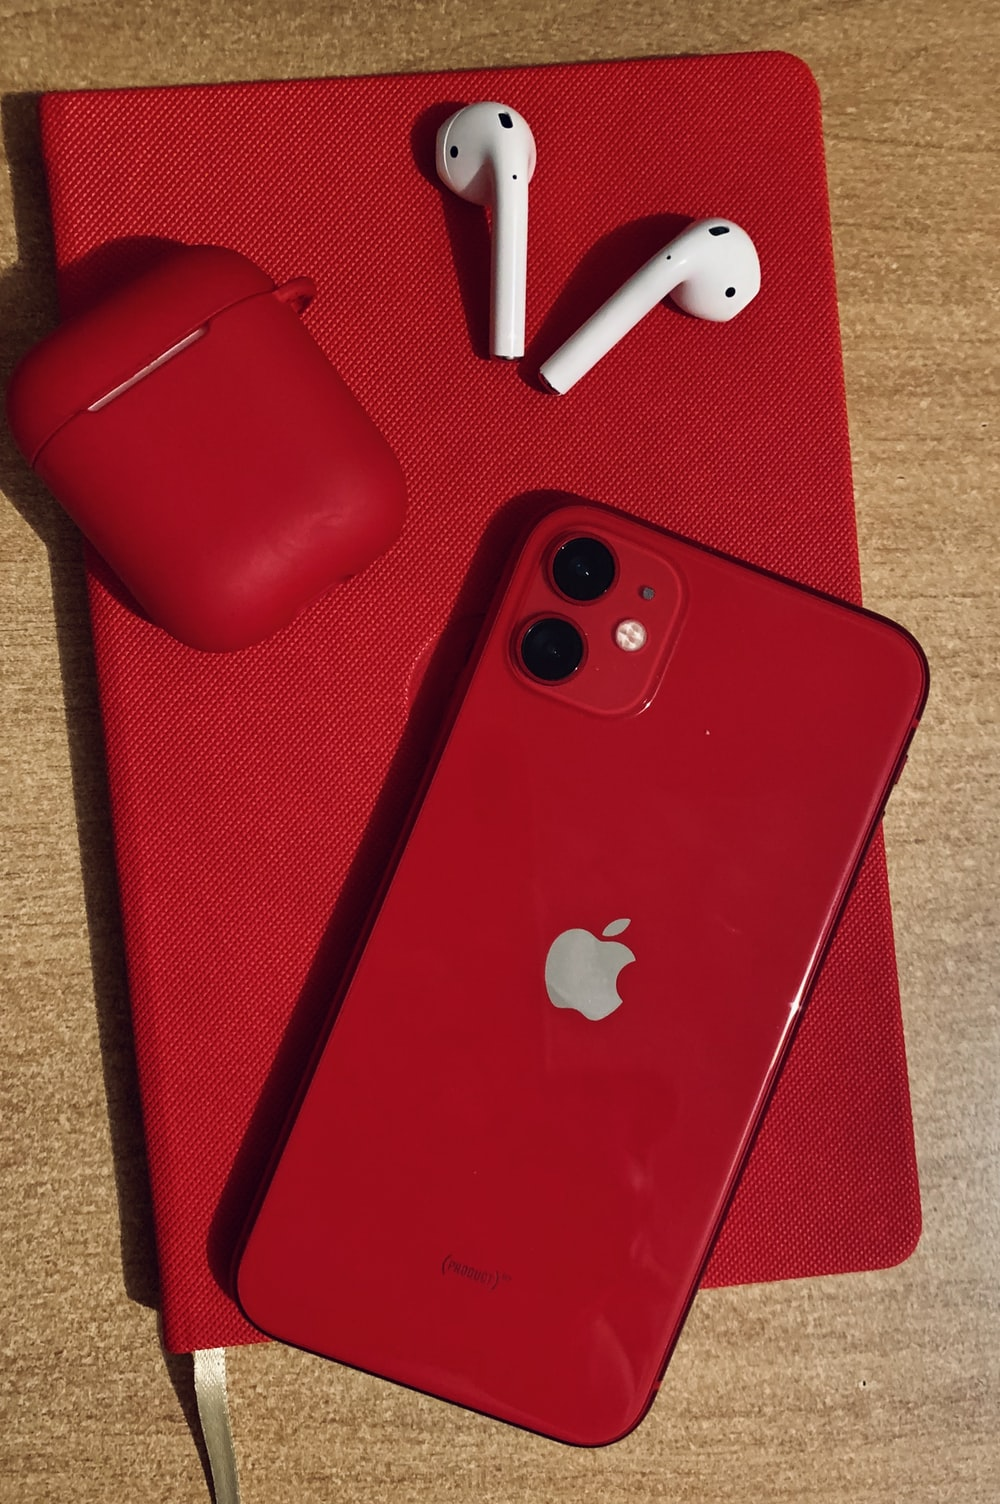 Red Phone Pictures Download Free Images On Unsplash